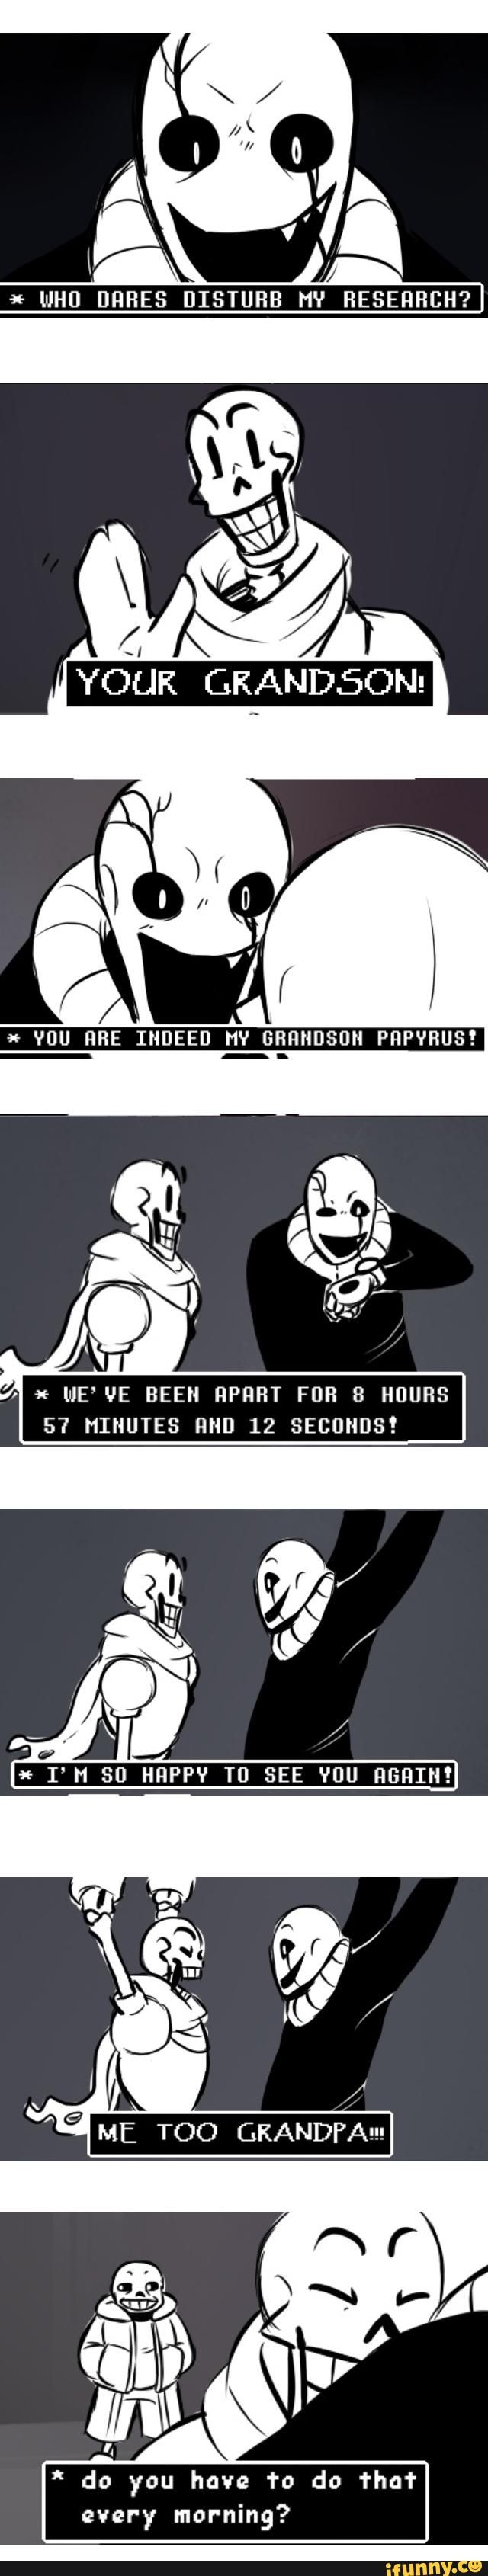 undertale, sans, papyrus, gaster-- Literally their relationship.